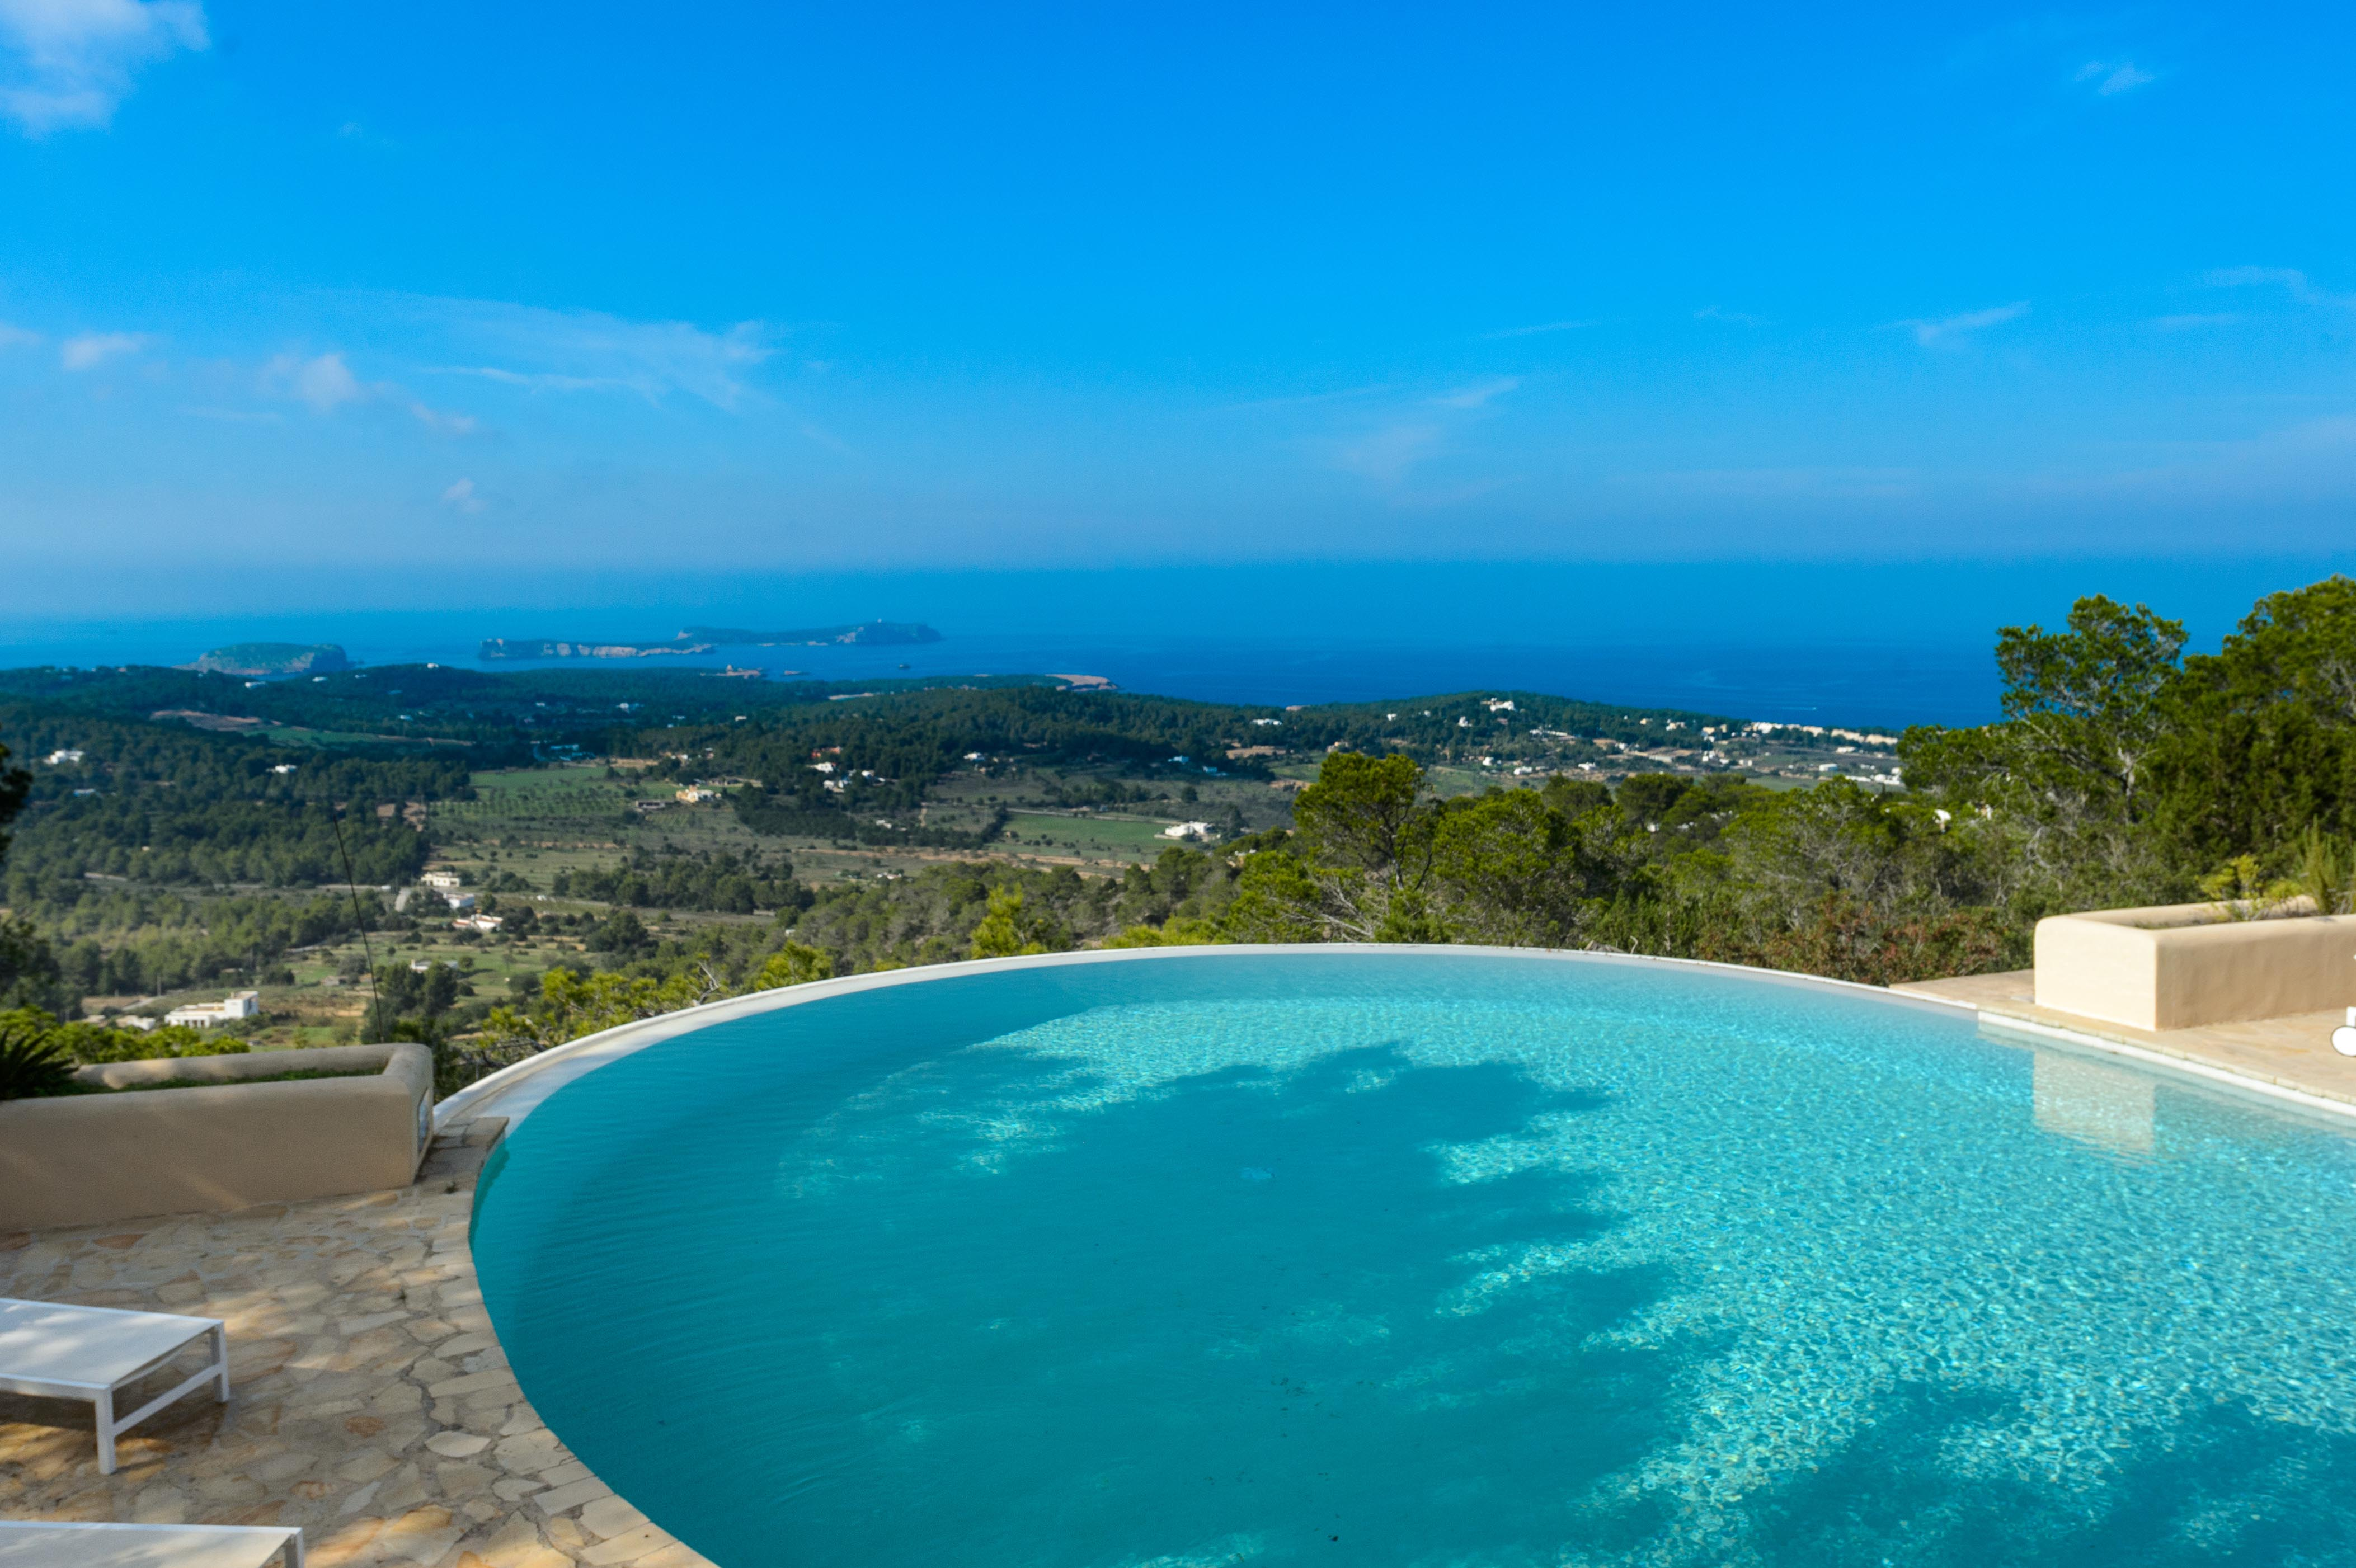 luxury villa rental, Spain, ESPIBI 1808